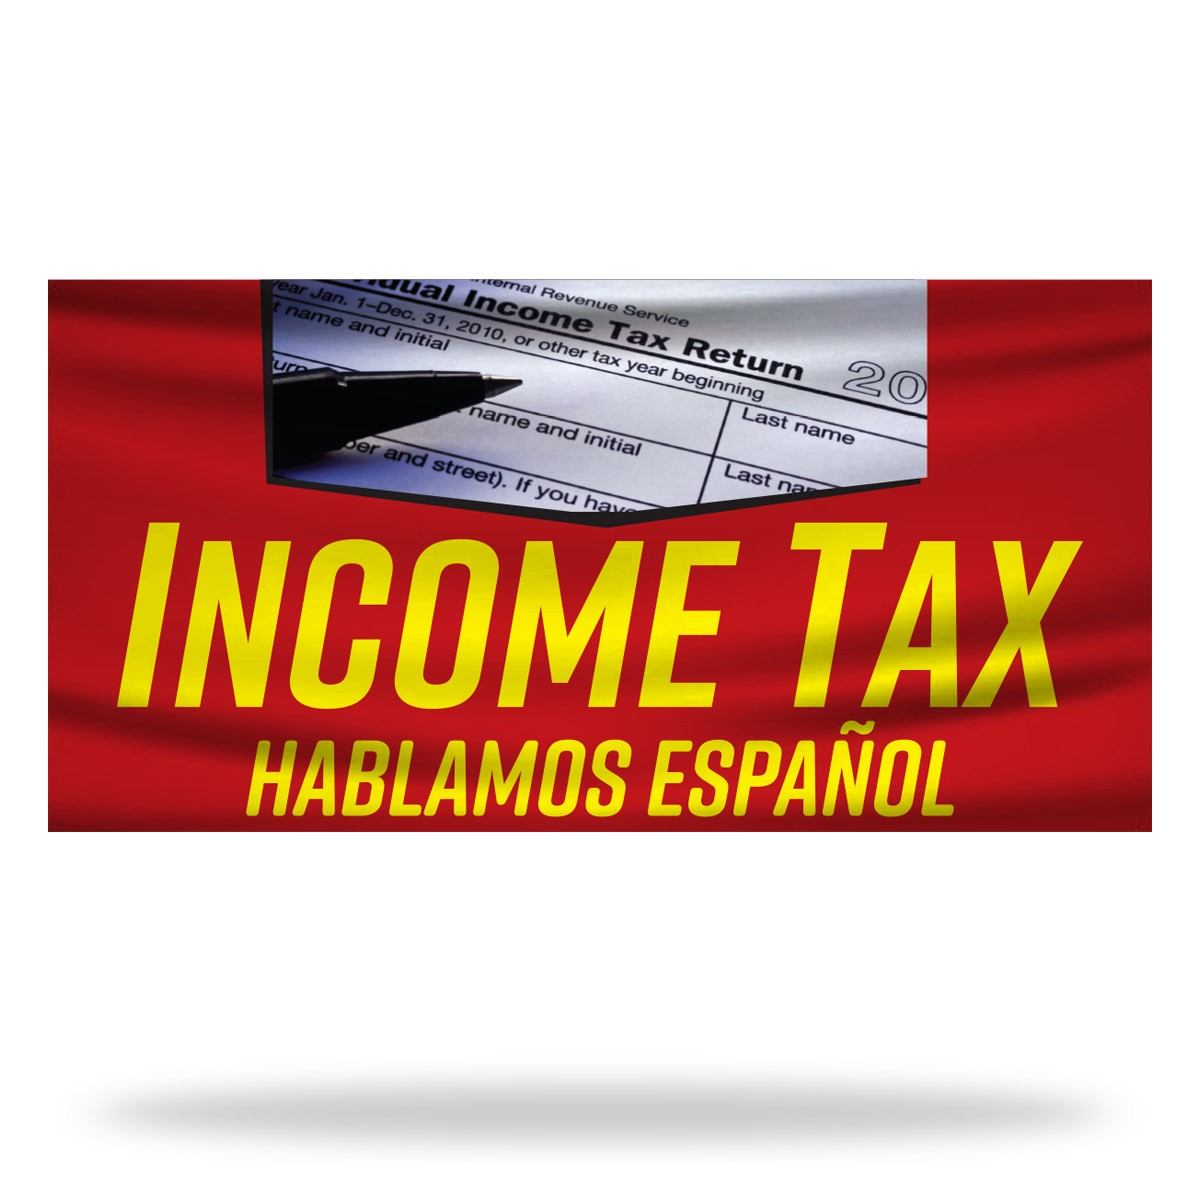 Income Tax Flags & Banners Design 05